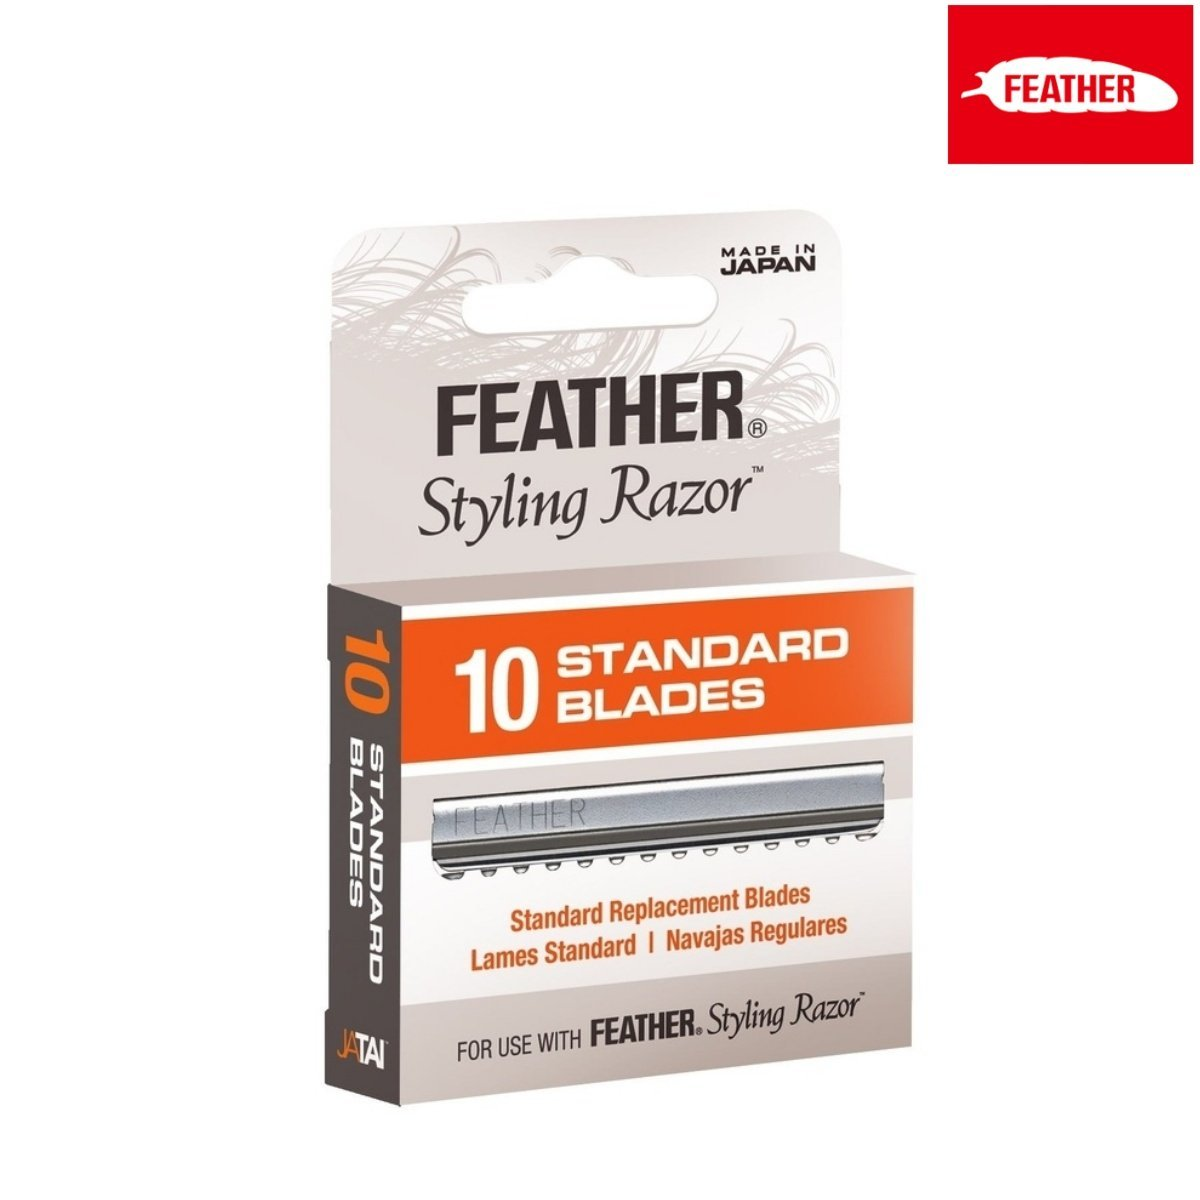 Feather Standard Blades For Styling Razor - Japan Scissors